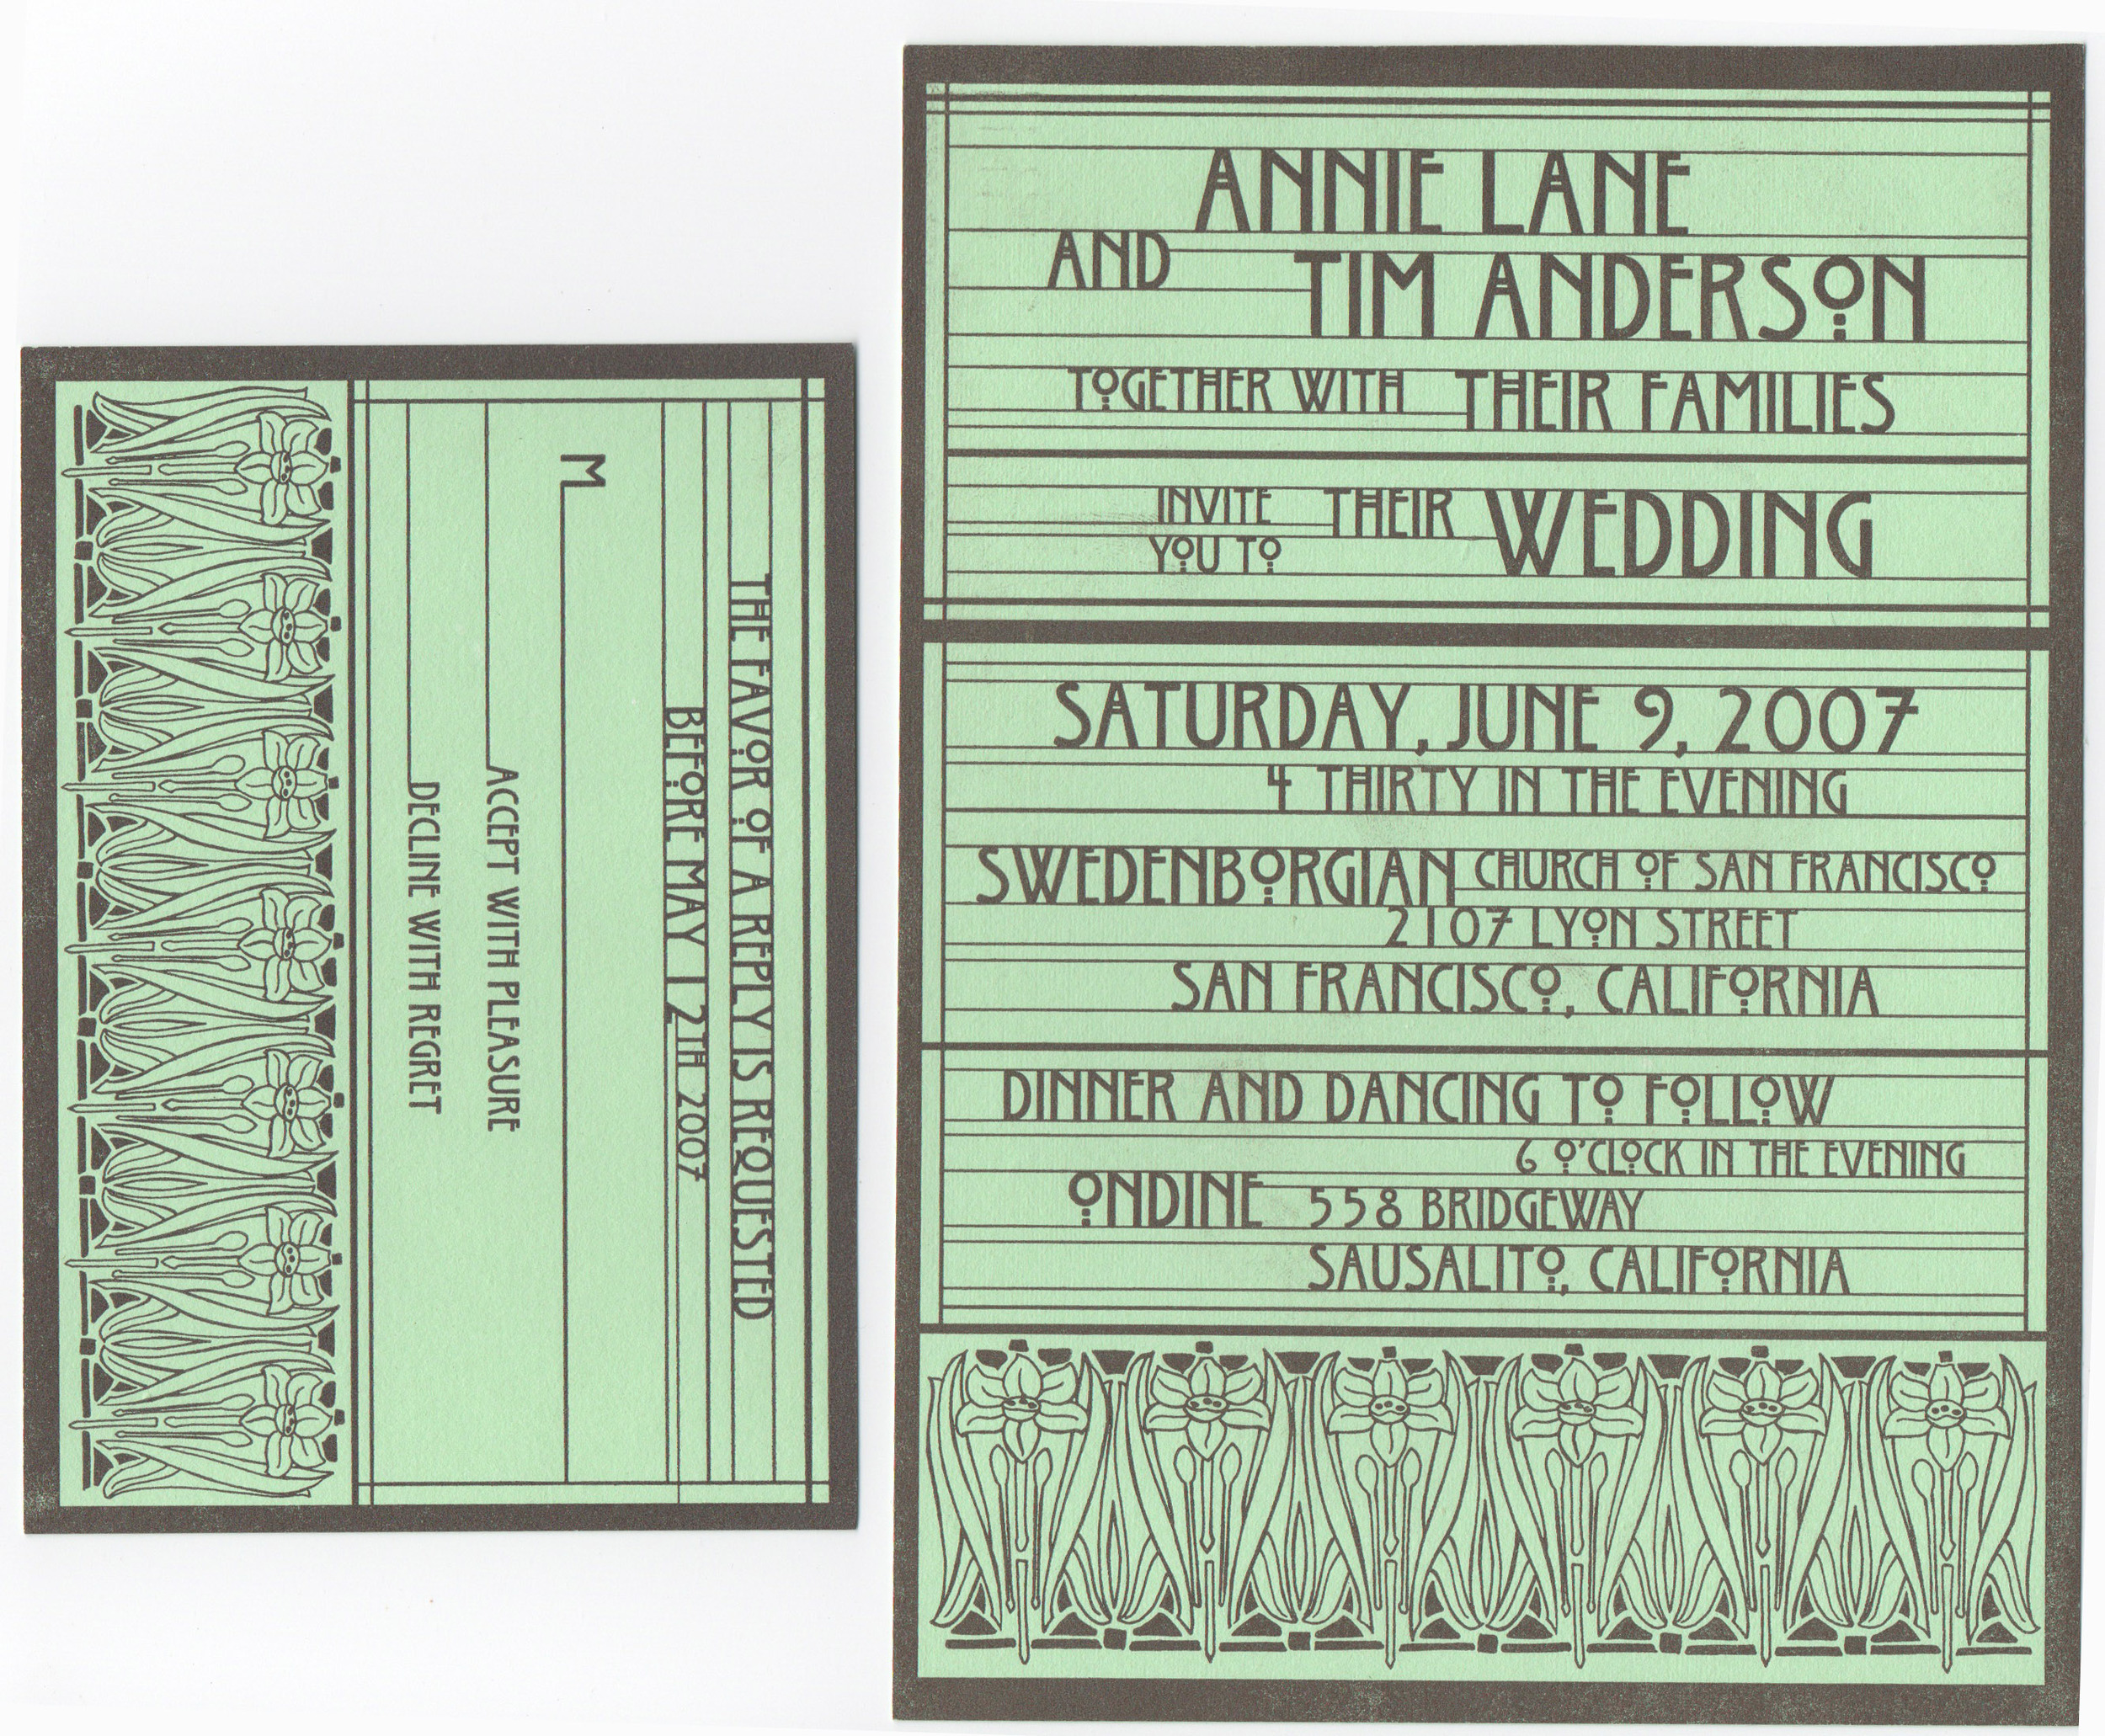 lane anderson invitation.jpeg